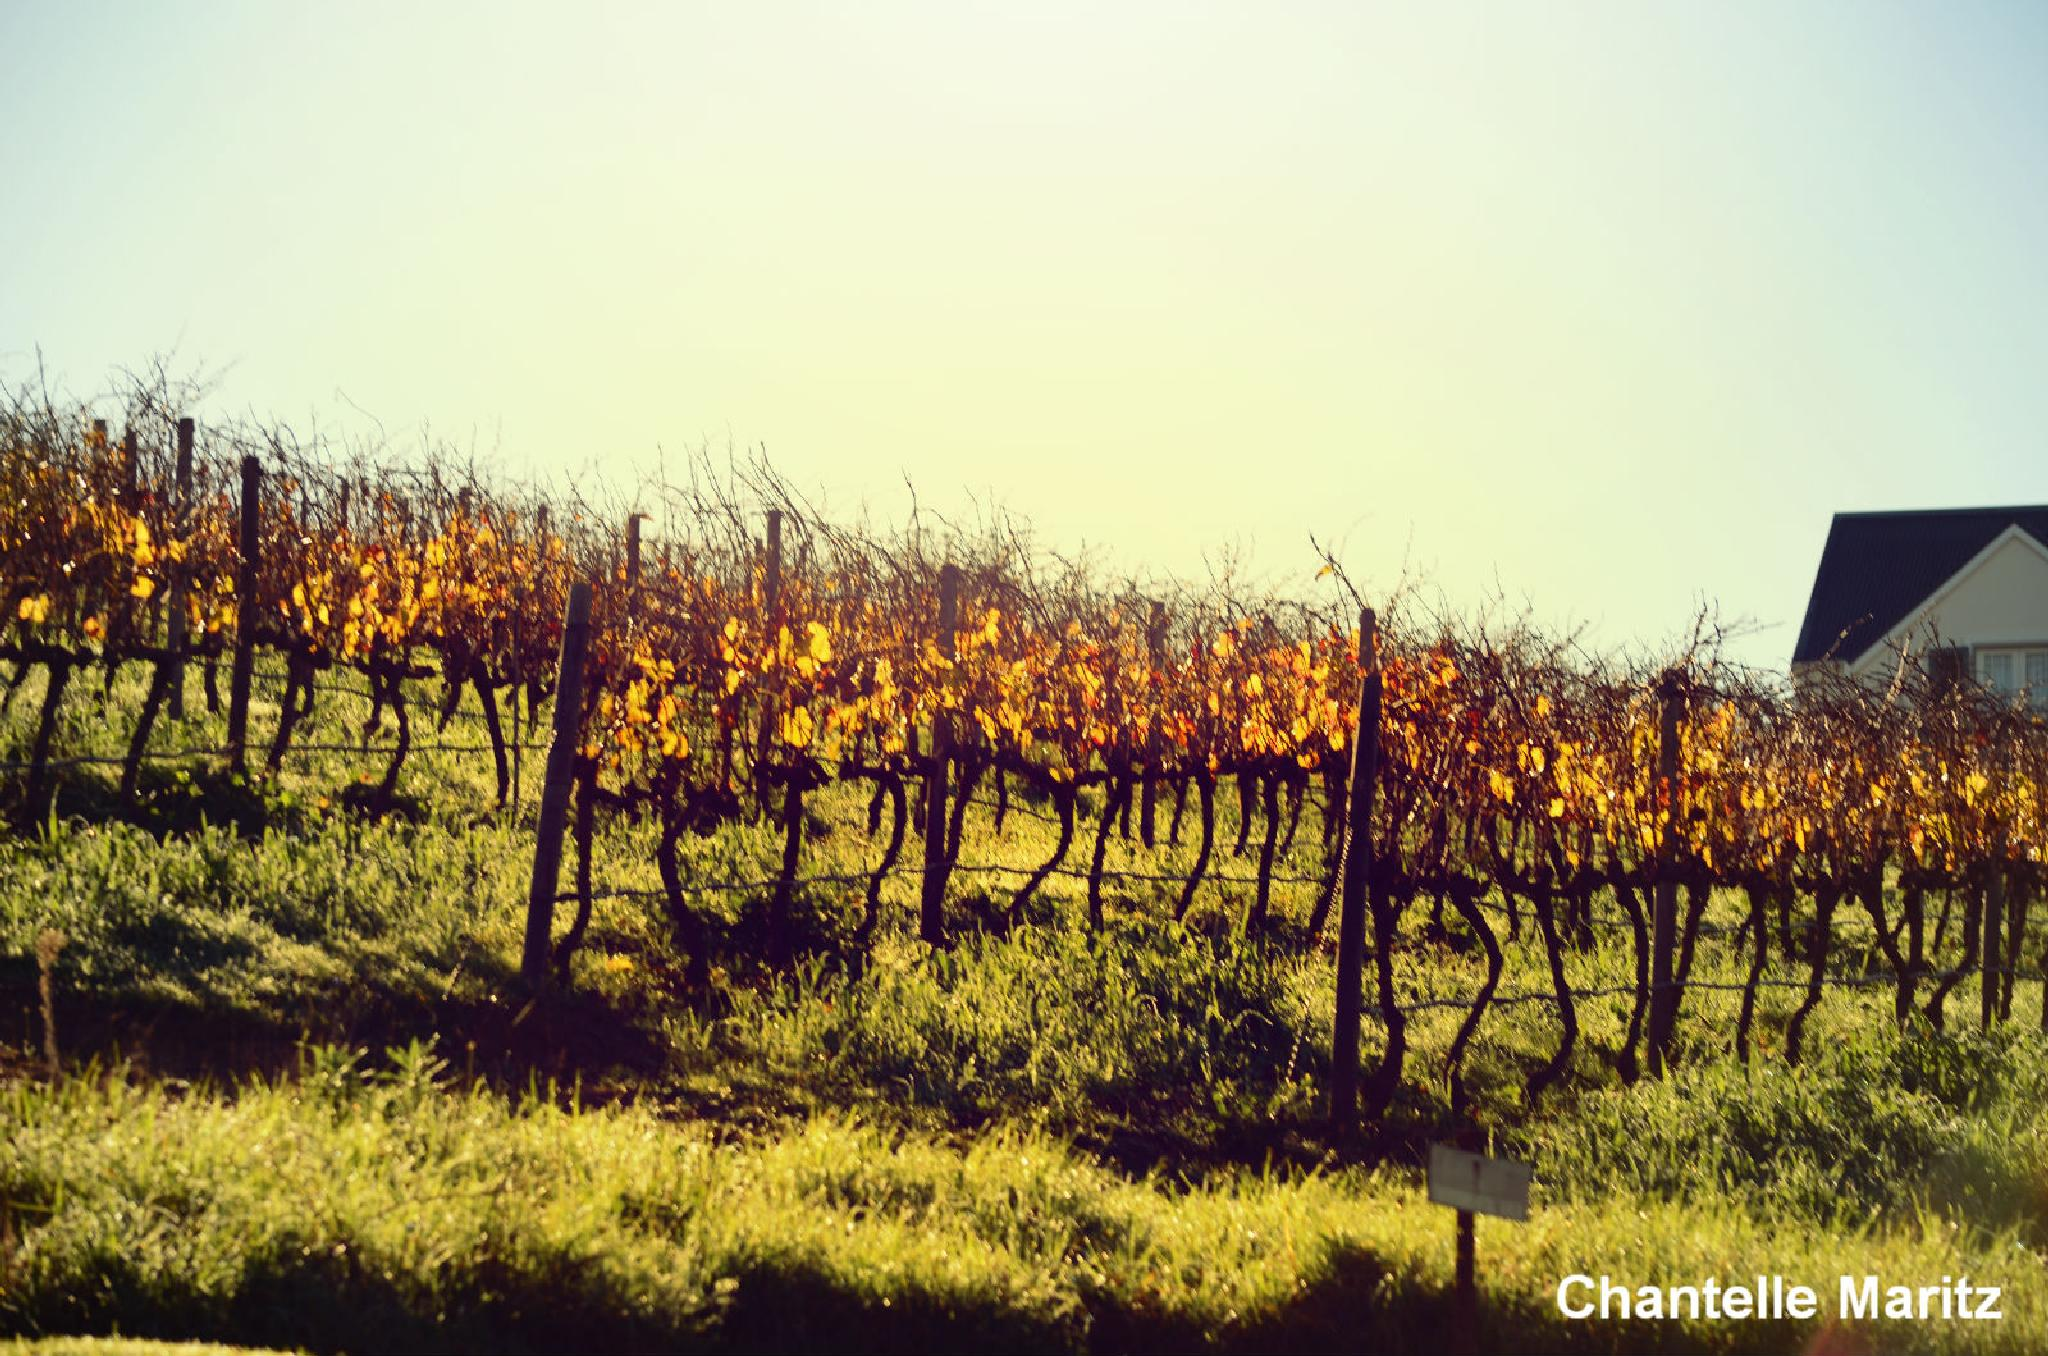 The vineyards. by Chantelle Maritz